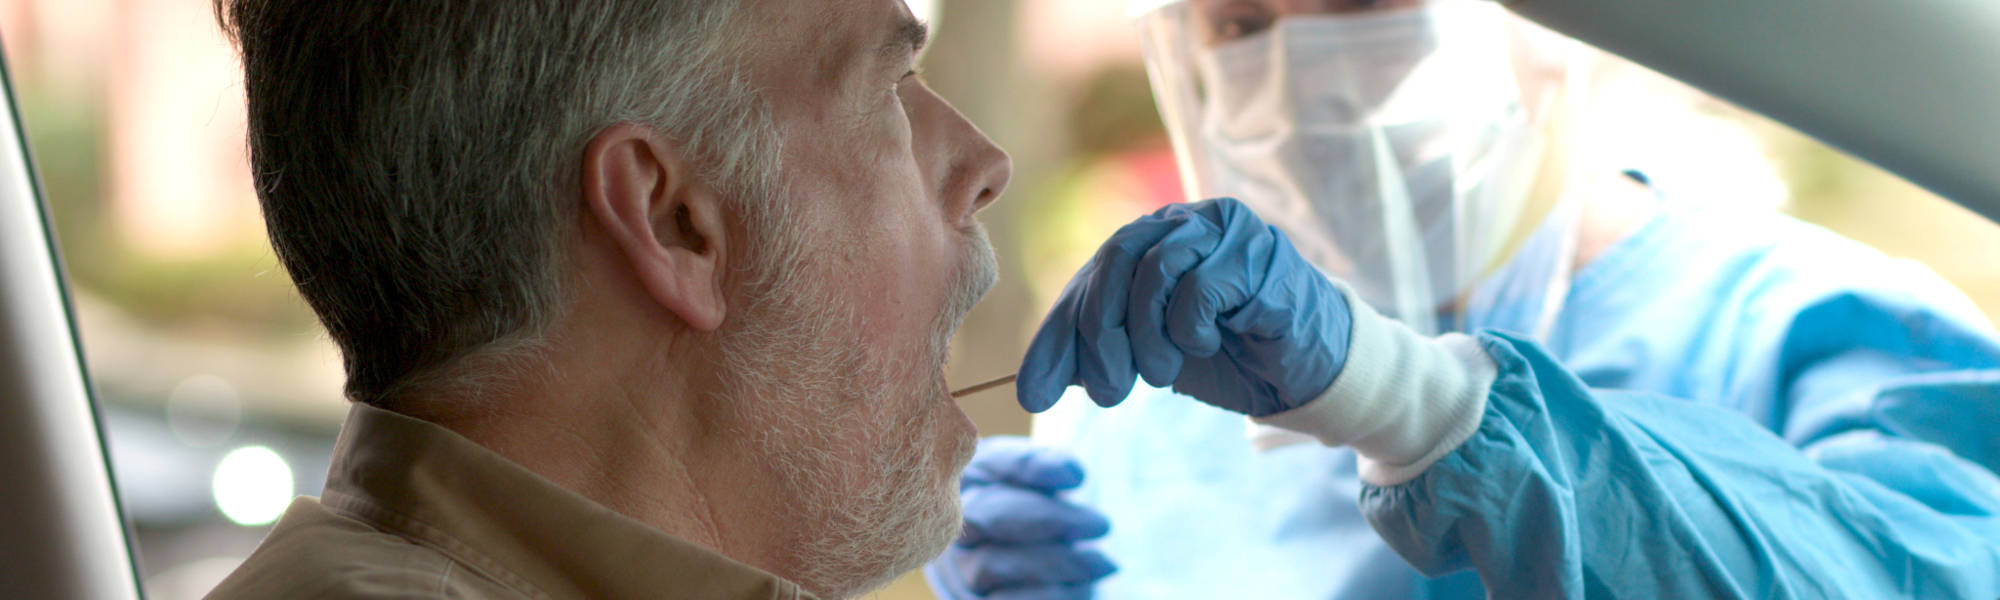 Photo of a man getting tested for coronavirus linking to the page section about how to get tested for coronavirus